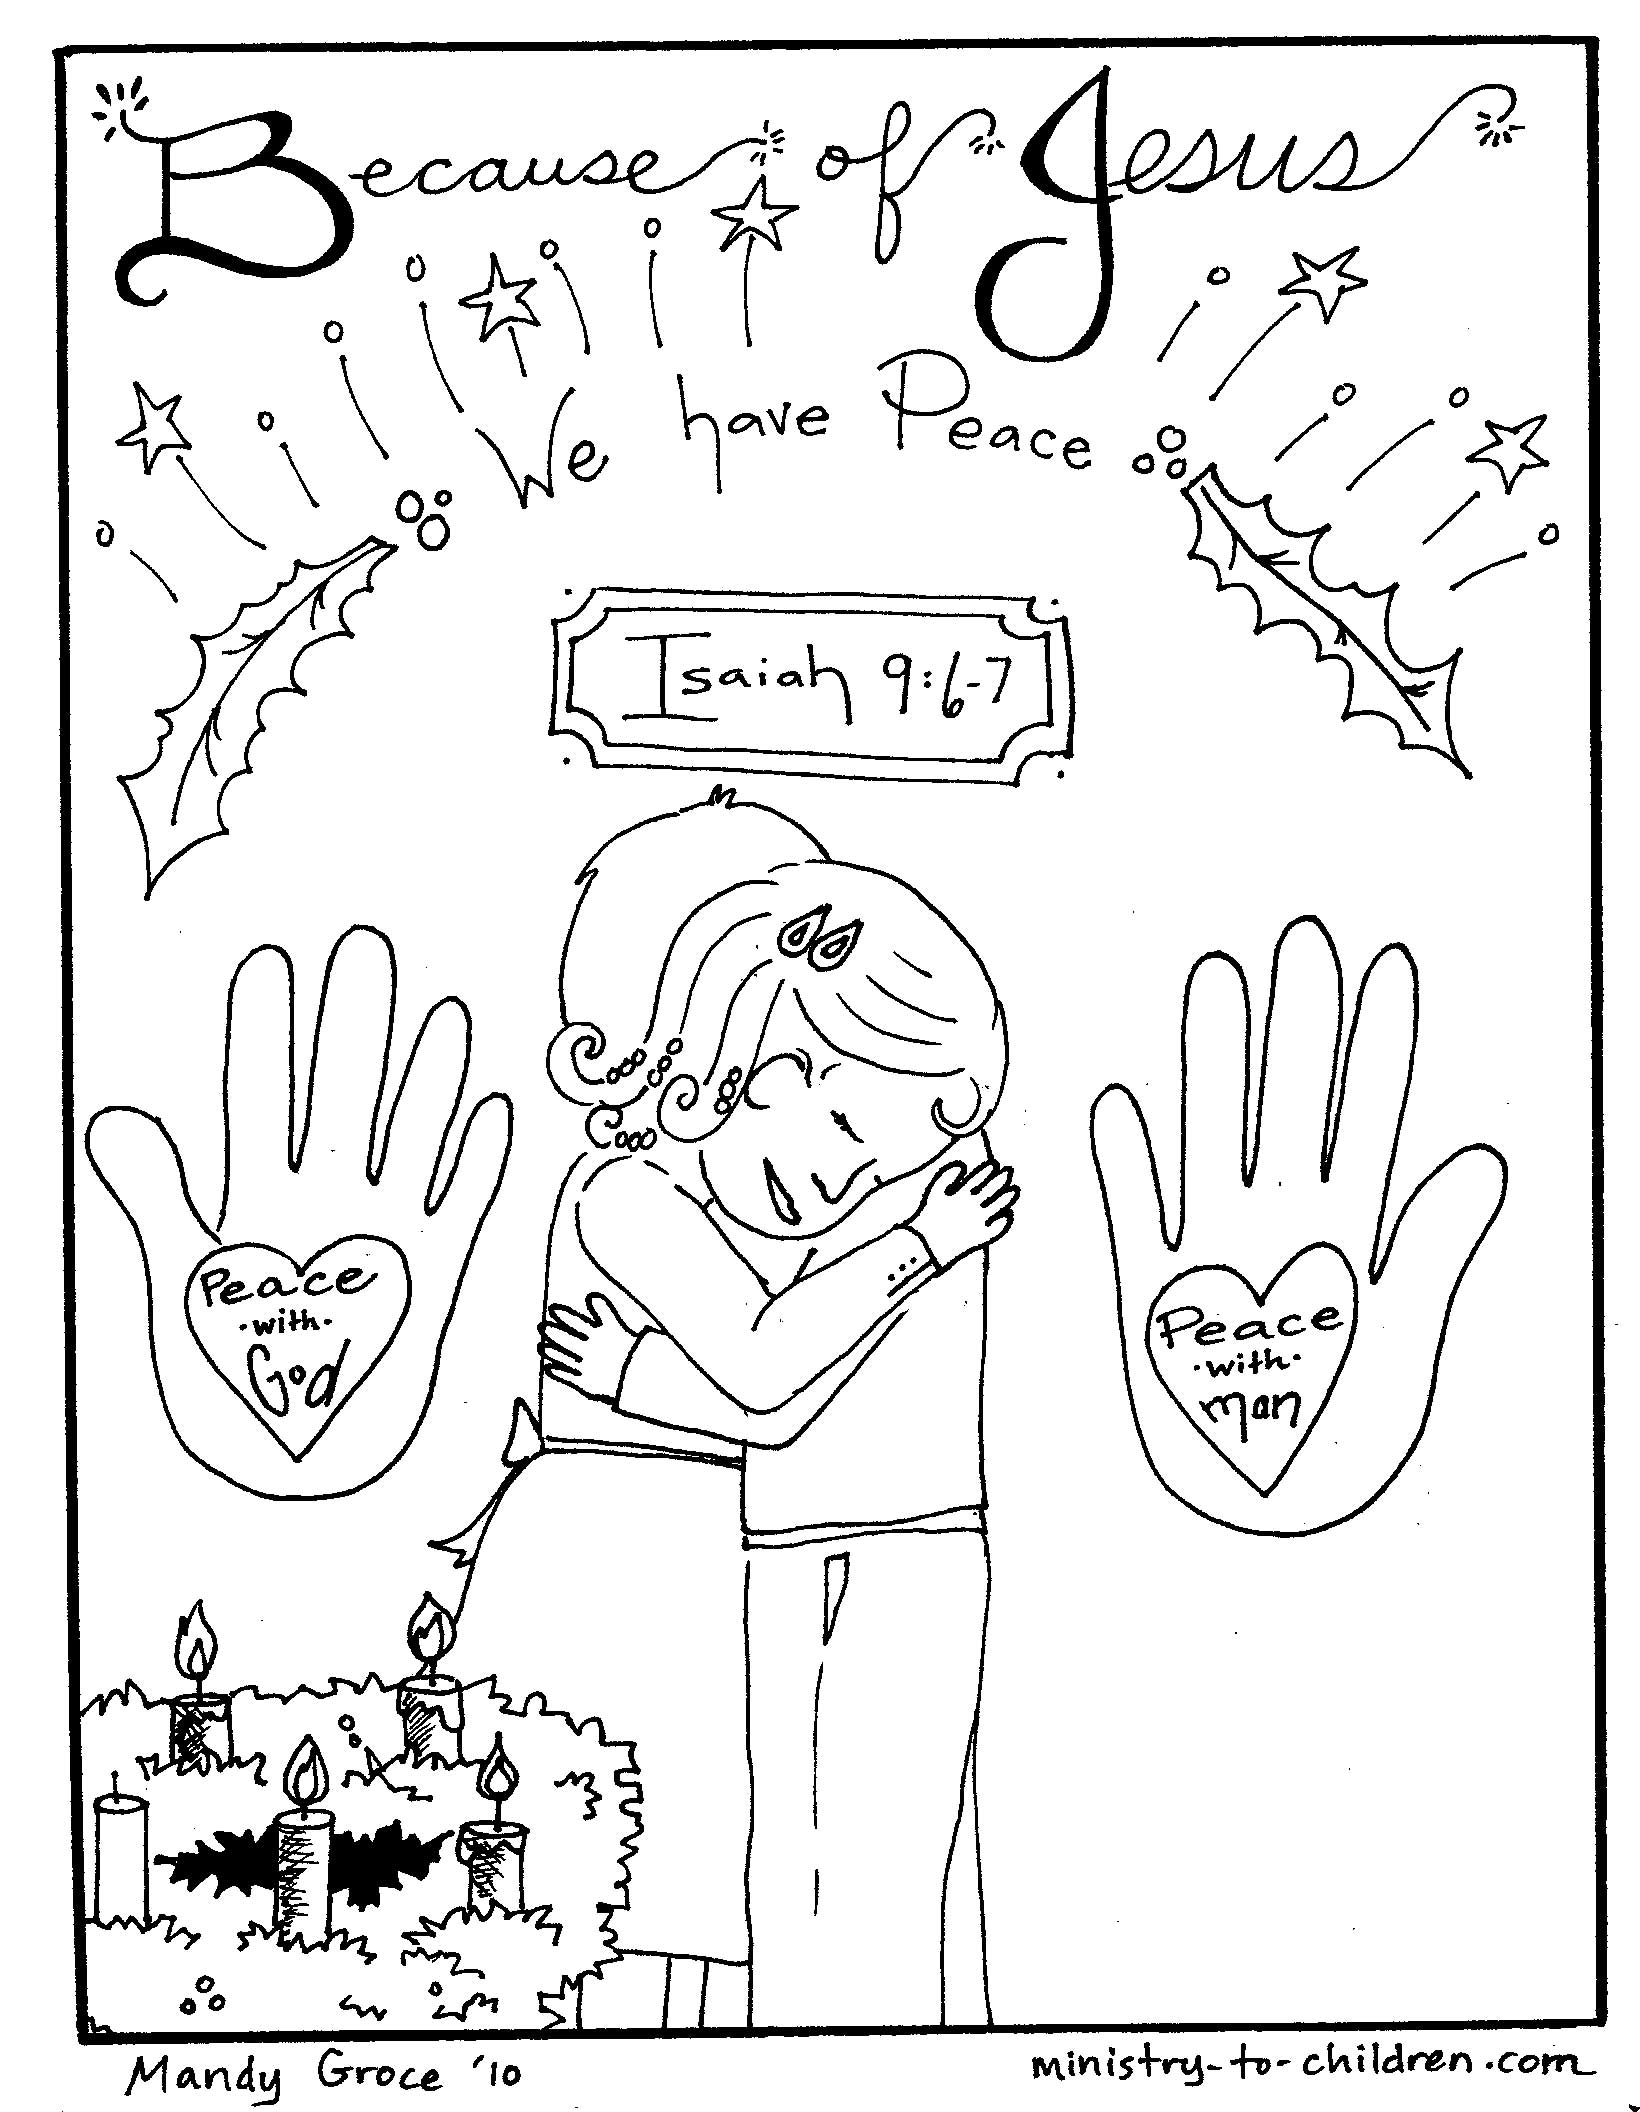 We have peace - Advent Coloring Page